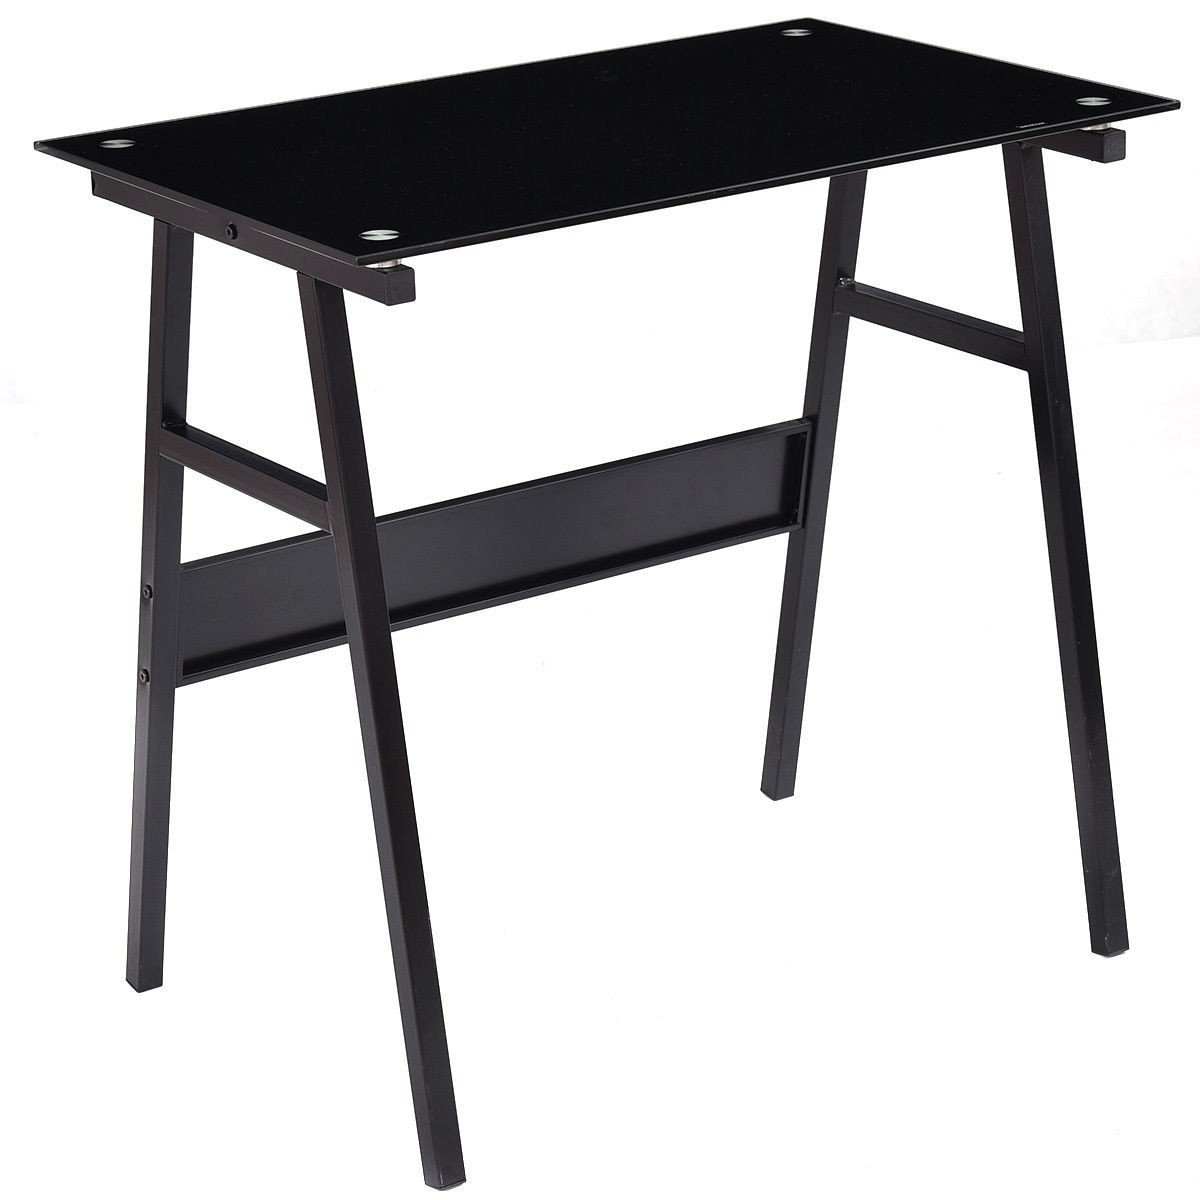 Black Glass Top Metal Leg Study Computer Desk - Black